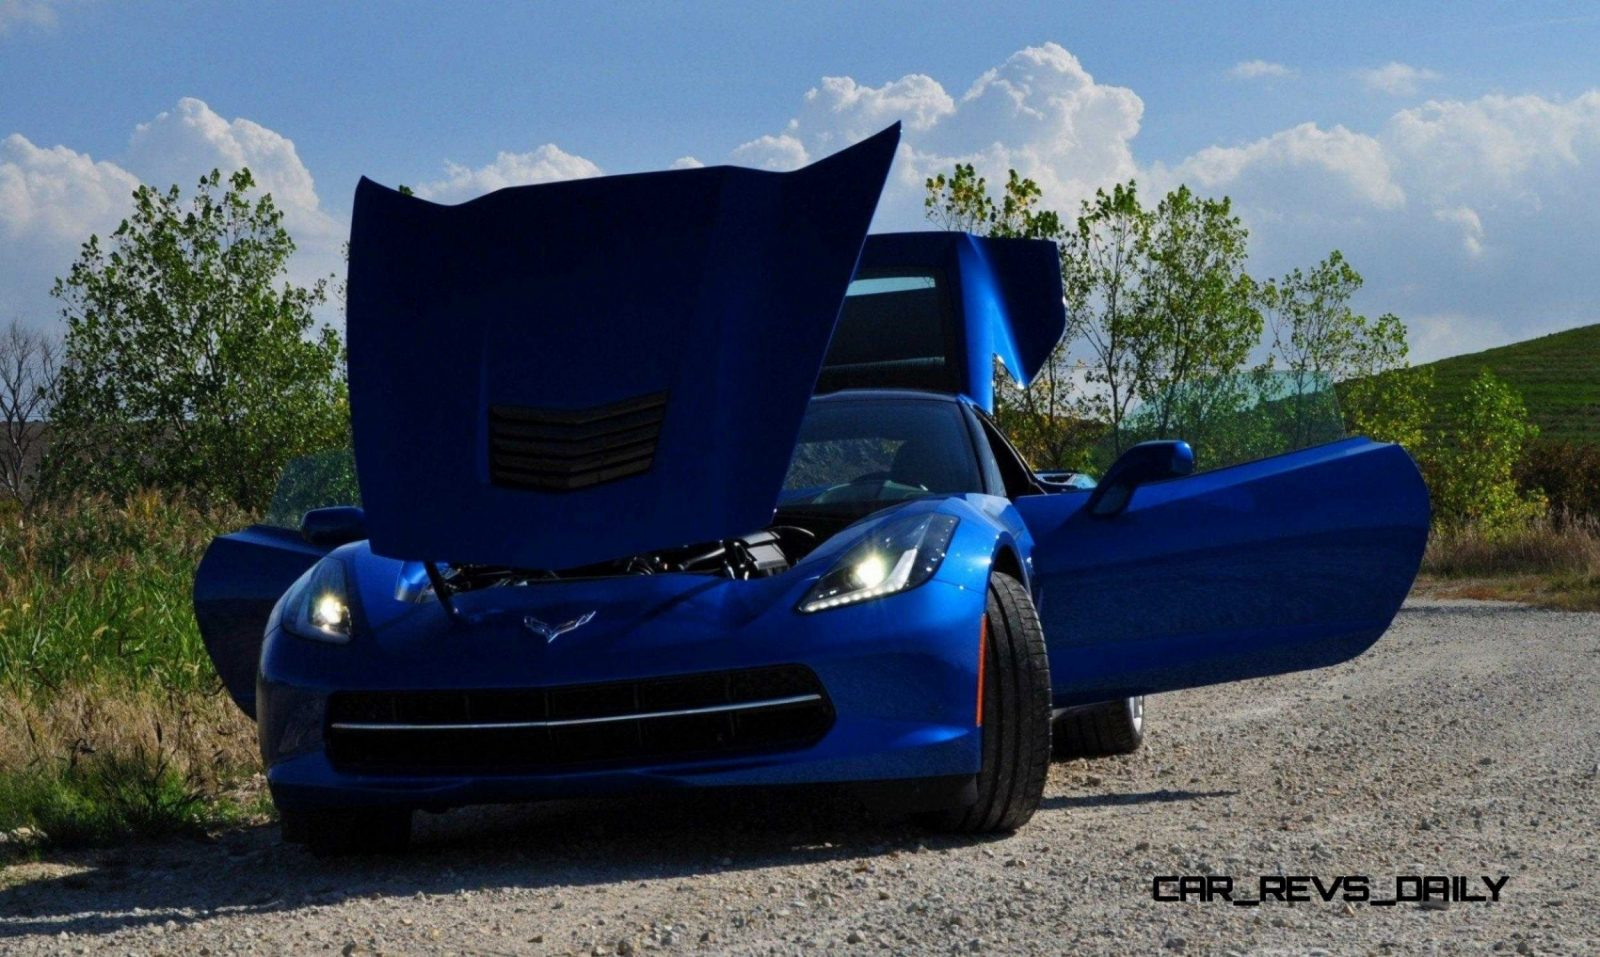 2014 Chevrolet Corvette Stingray Z51 in 102 Photos58